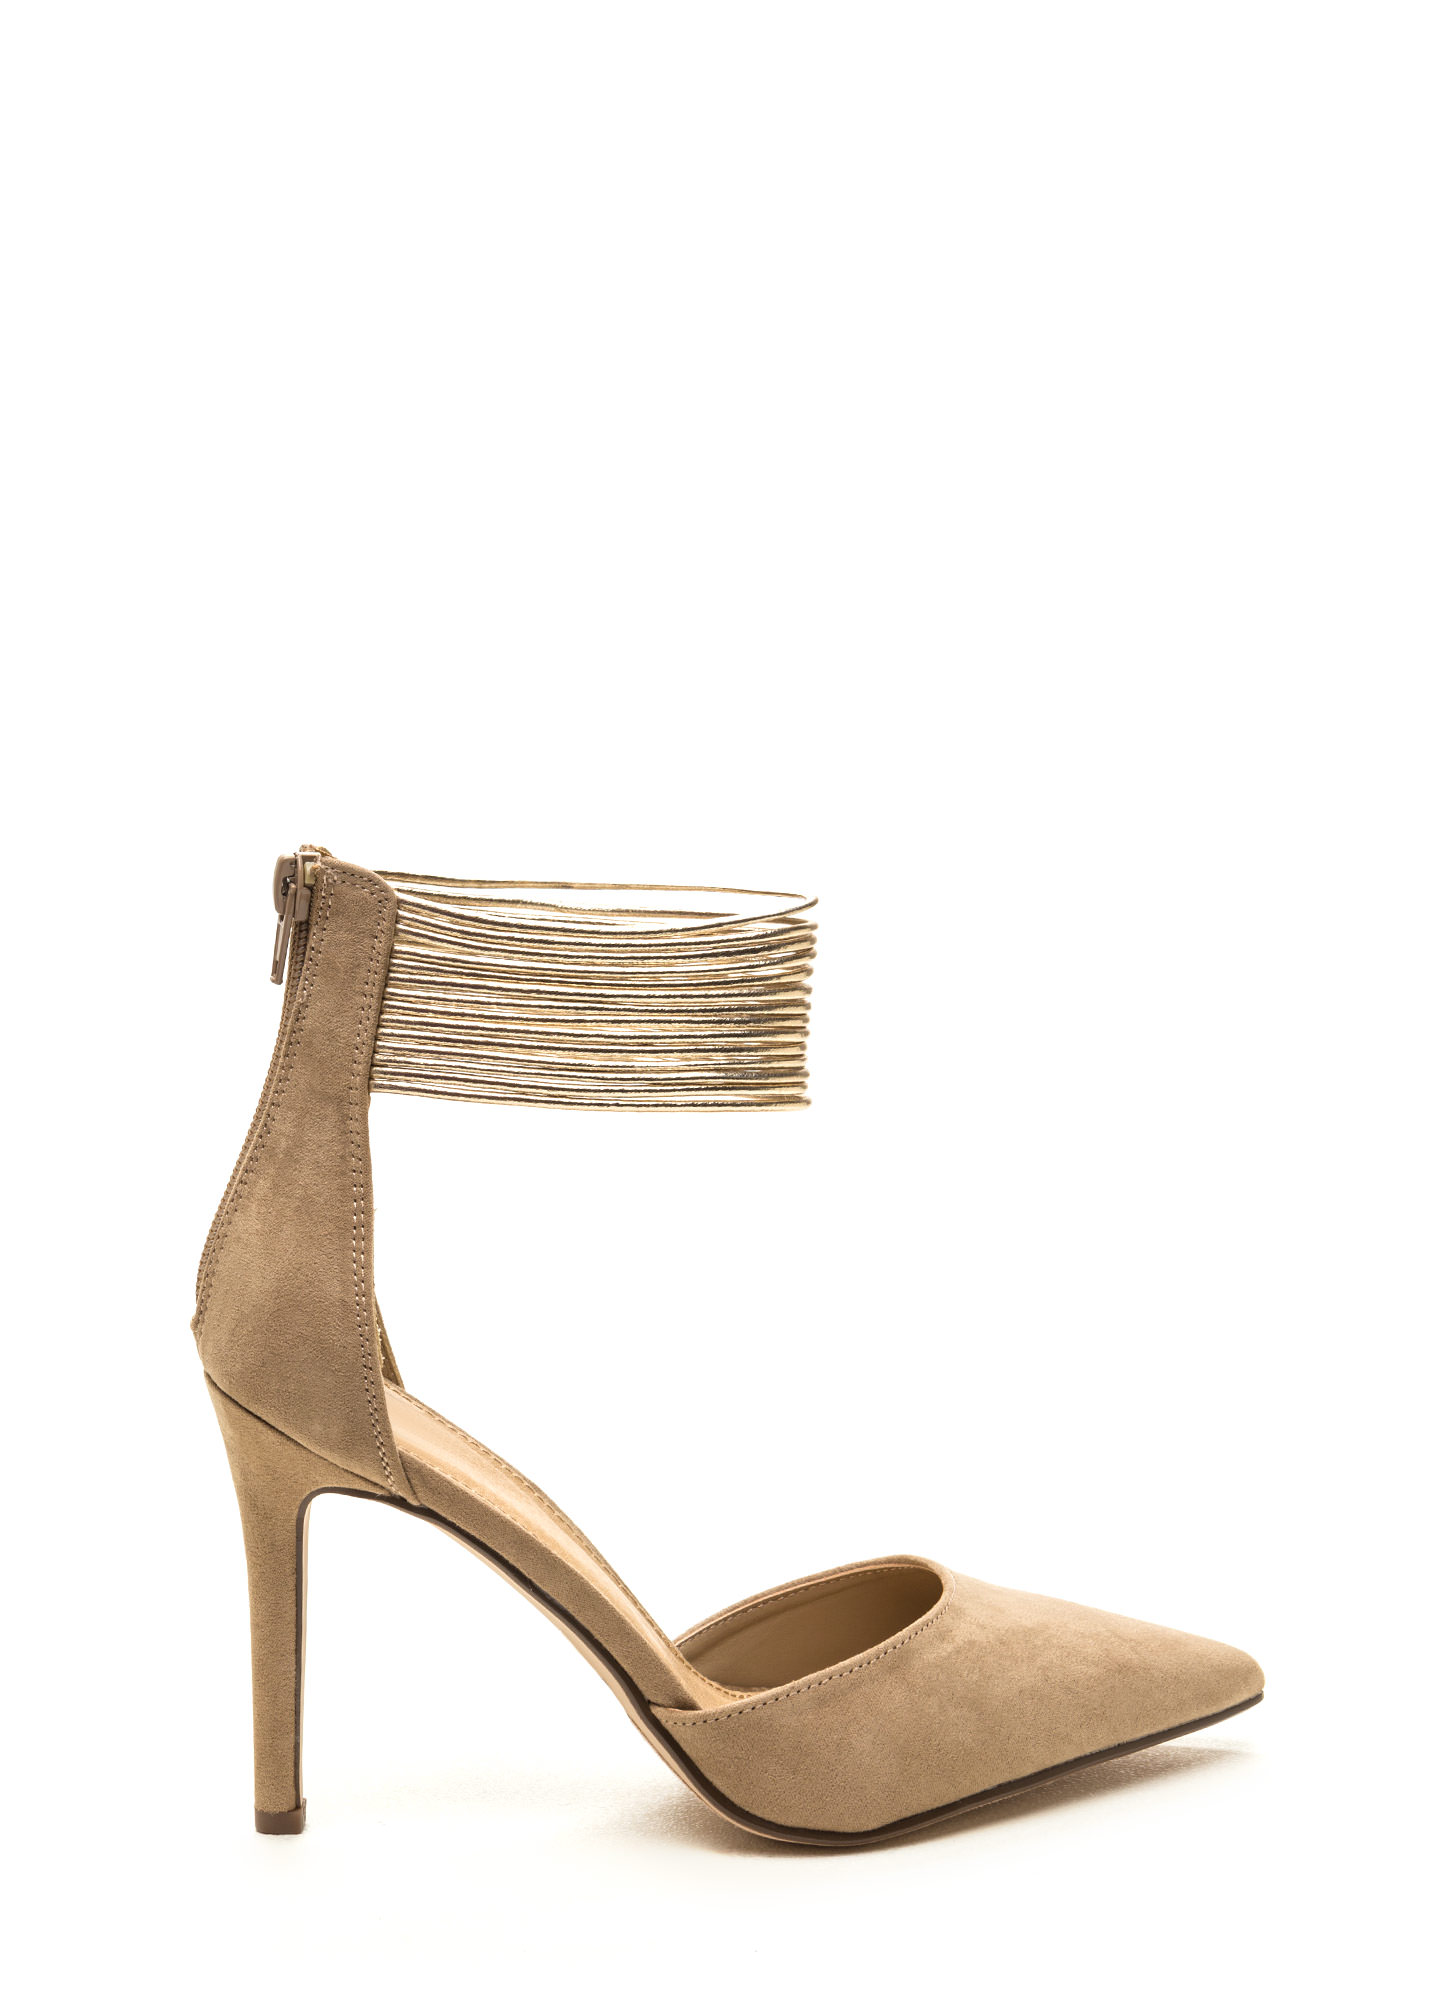 Power Play Pointy Faux Suede Heels TAUPEGOLD